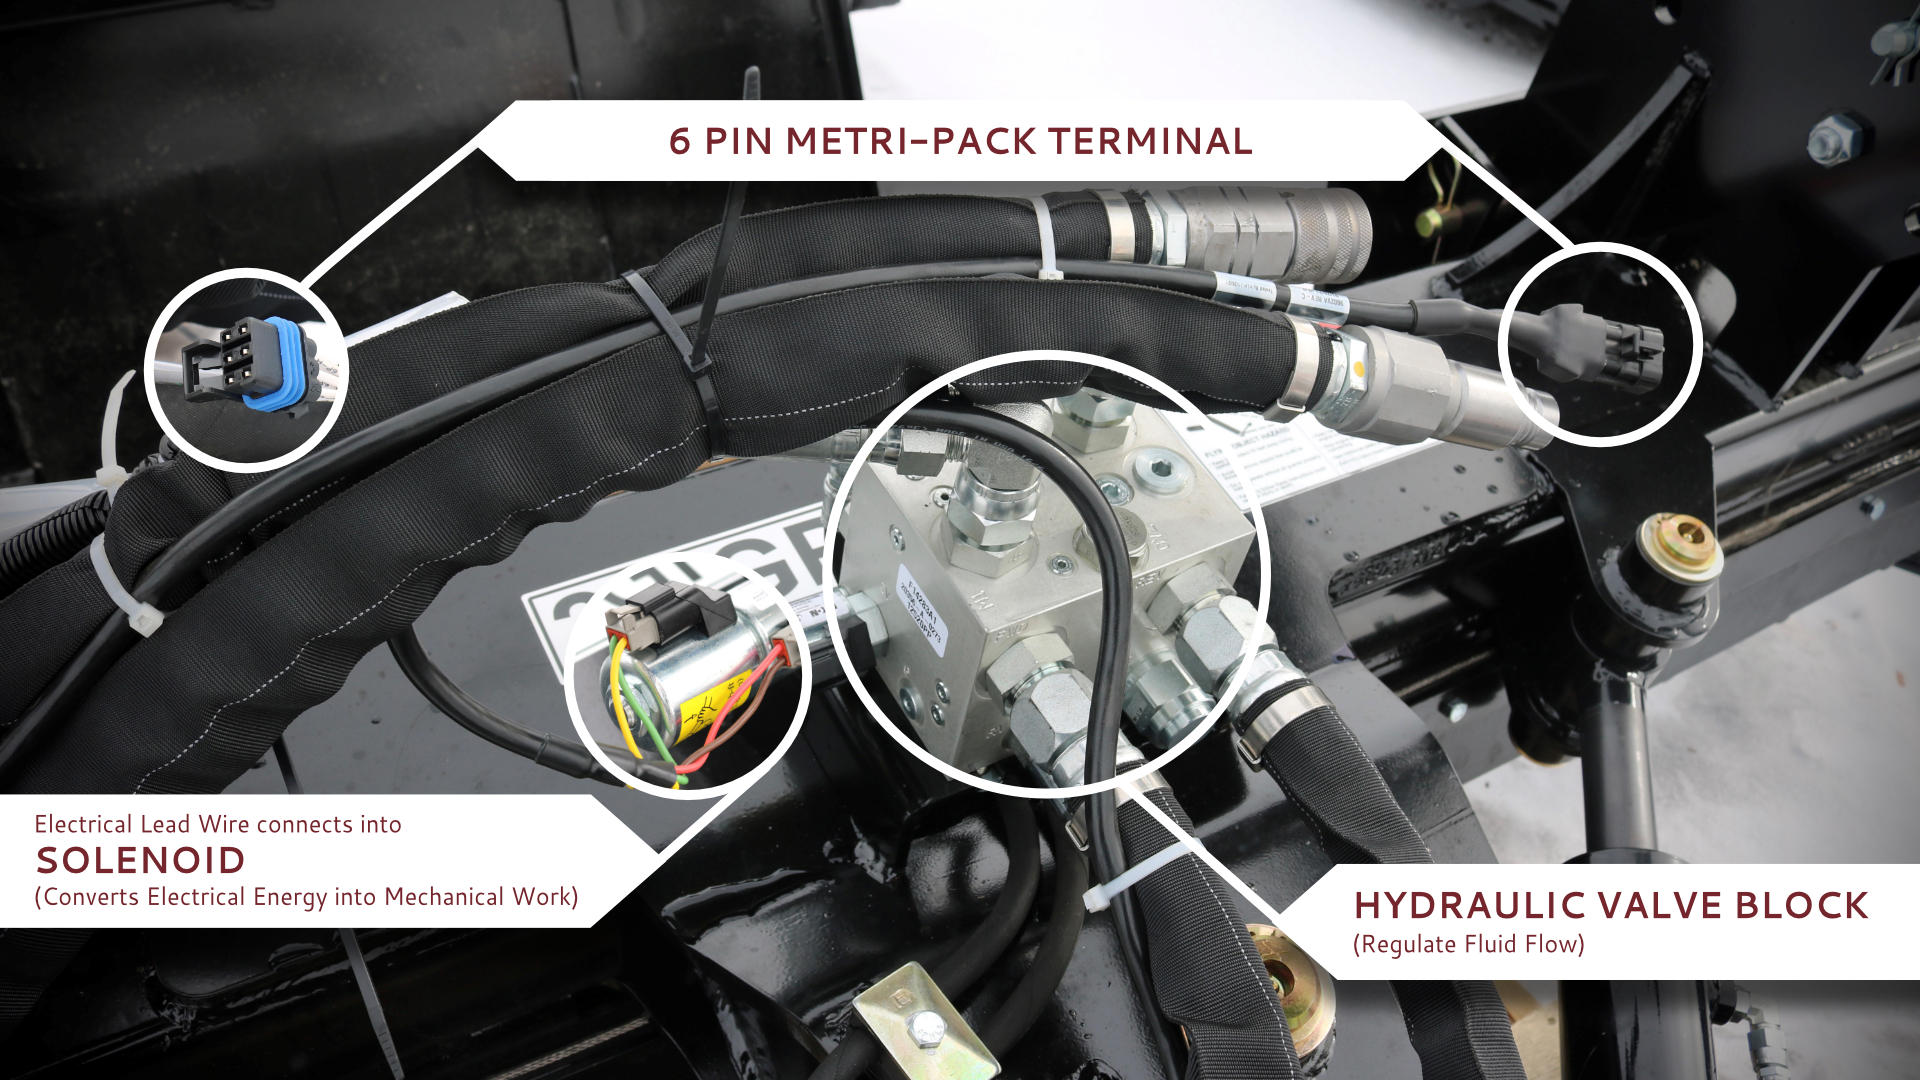 Image showing where the 6 pin metri-pack terminal, solenoid, and hydraulic valve block are located